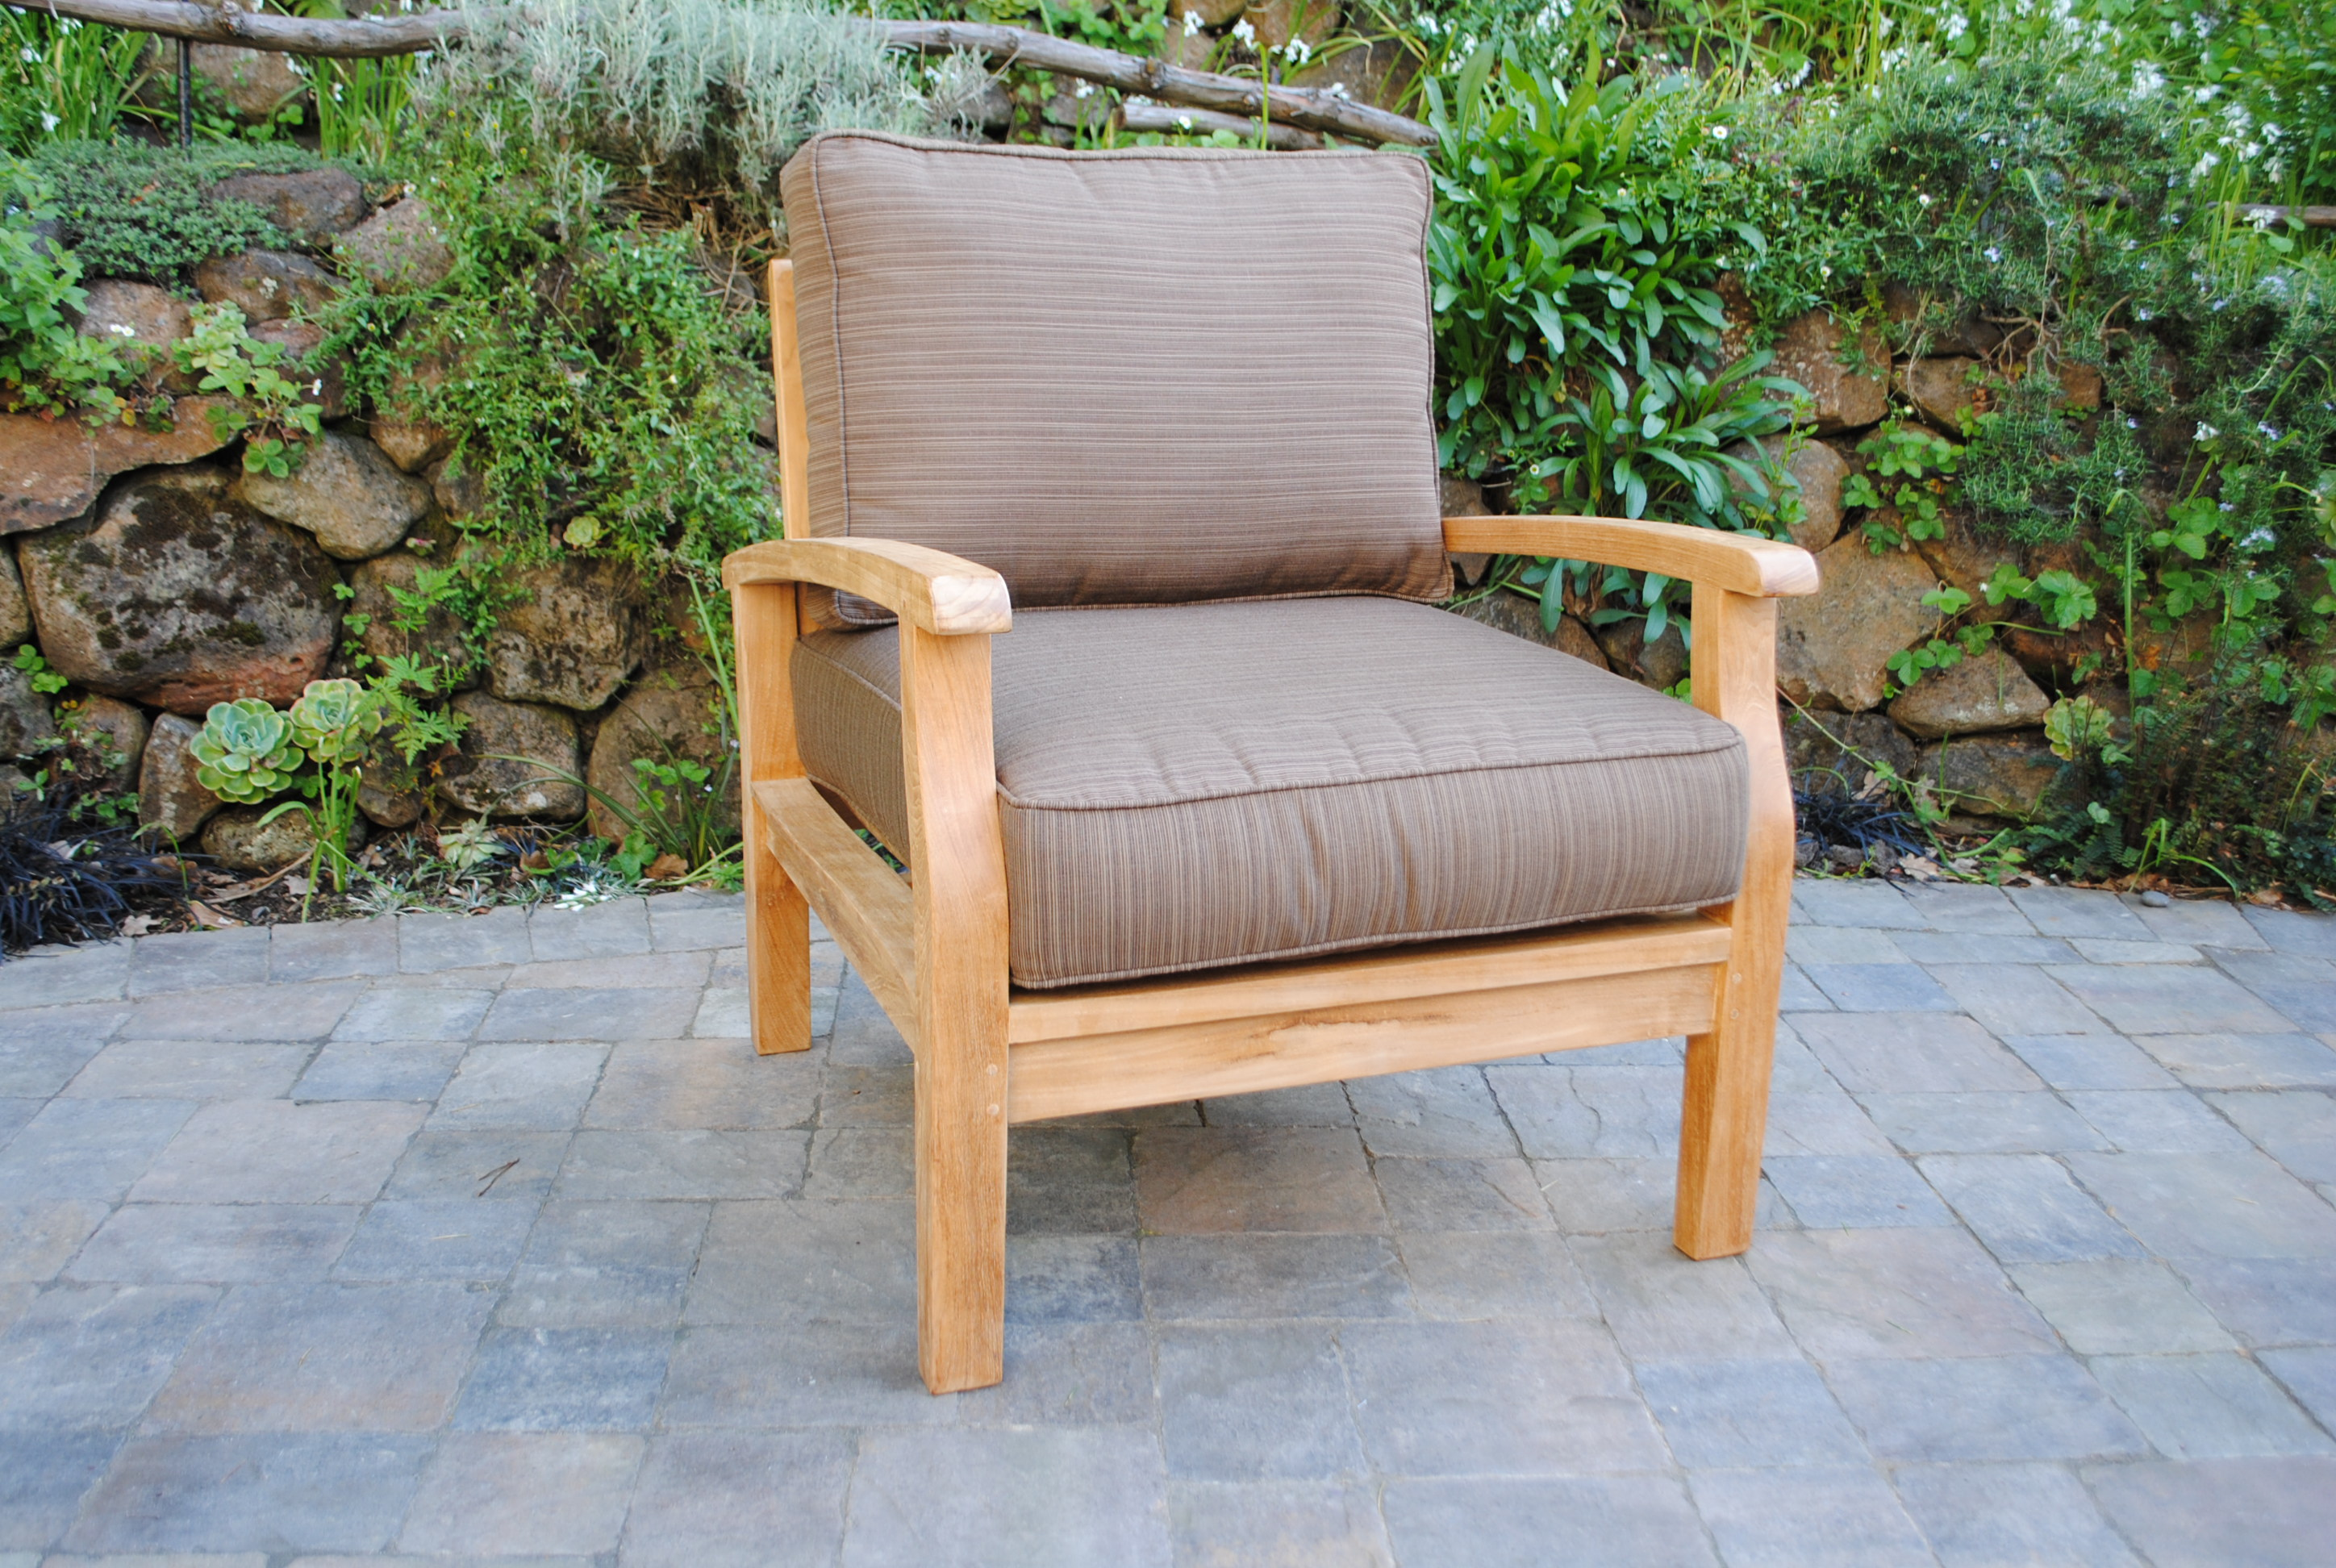 Sonoma Deep Seating Lounge Chair with Sunbrella Cushions